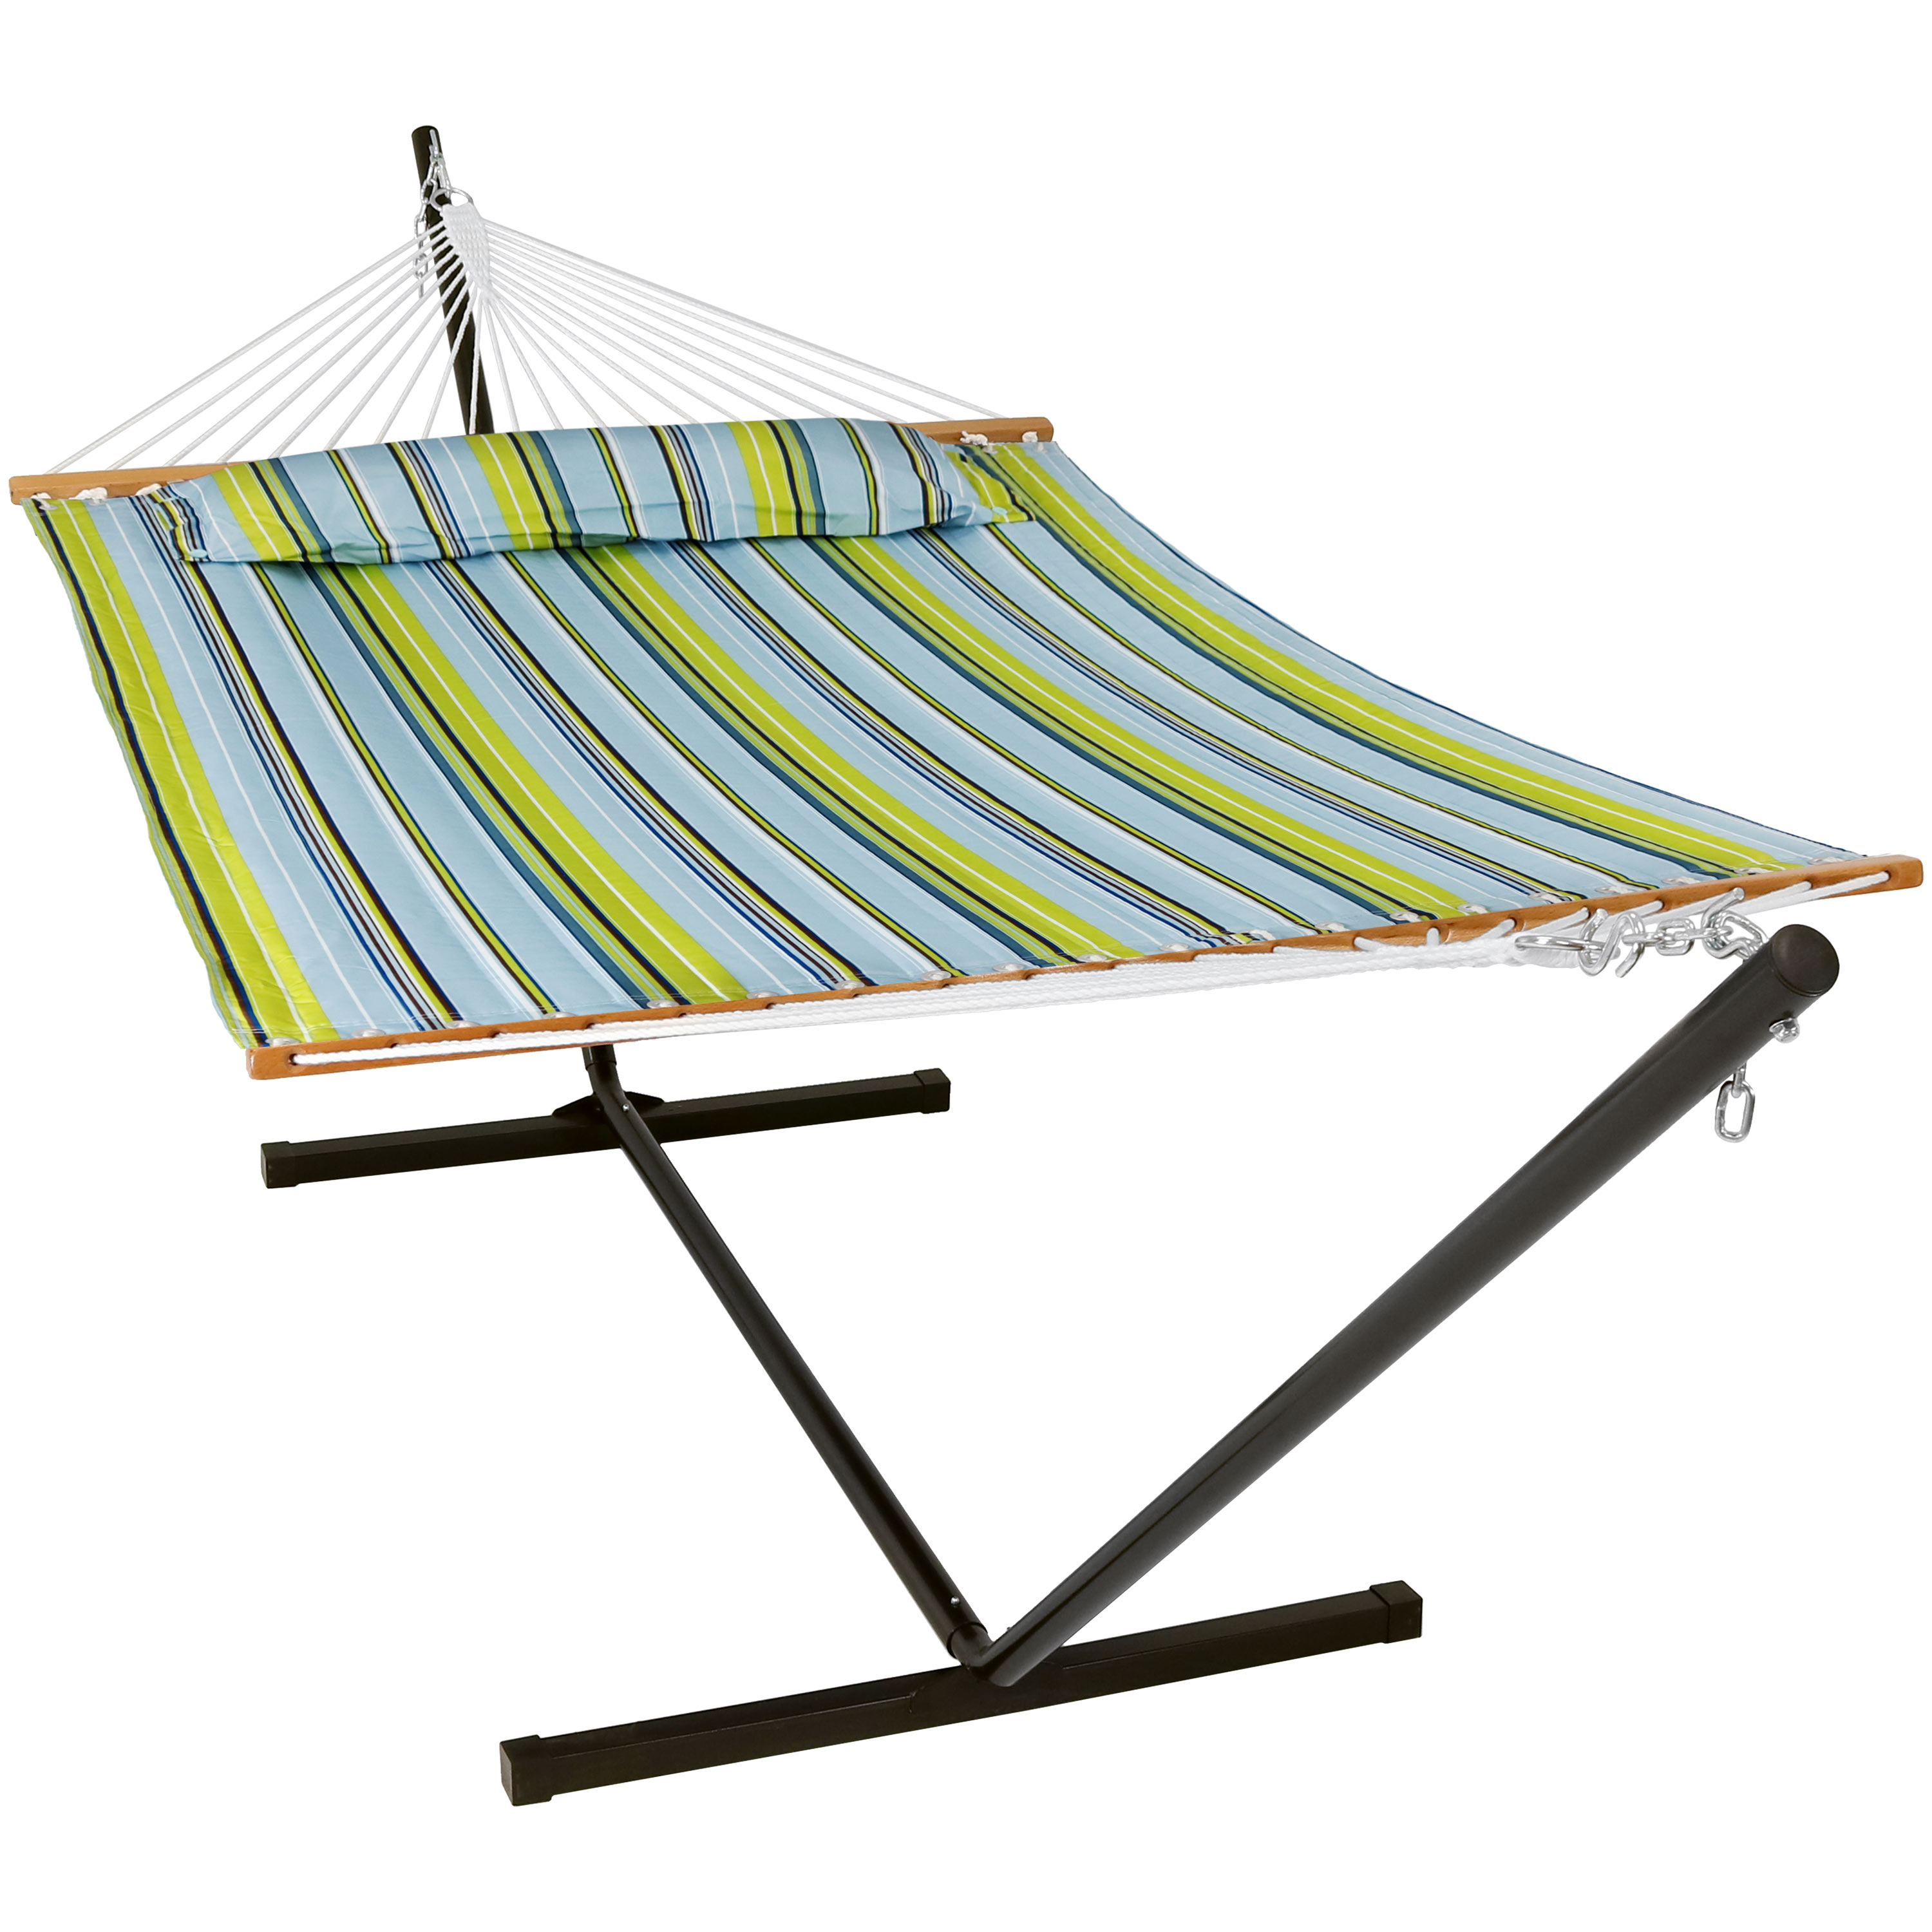 Double Hammock Portable Stand Spreader Bar Bed Blue Green Photo